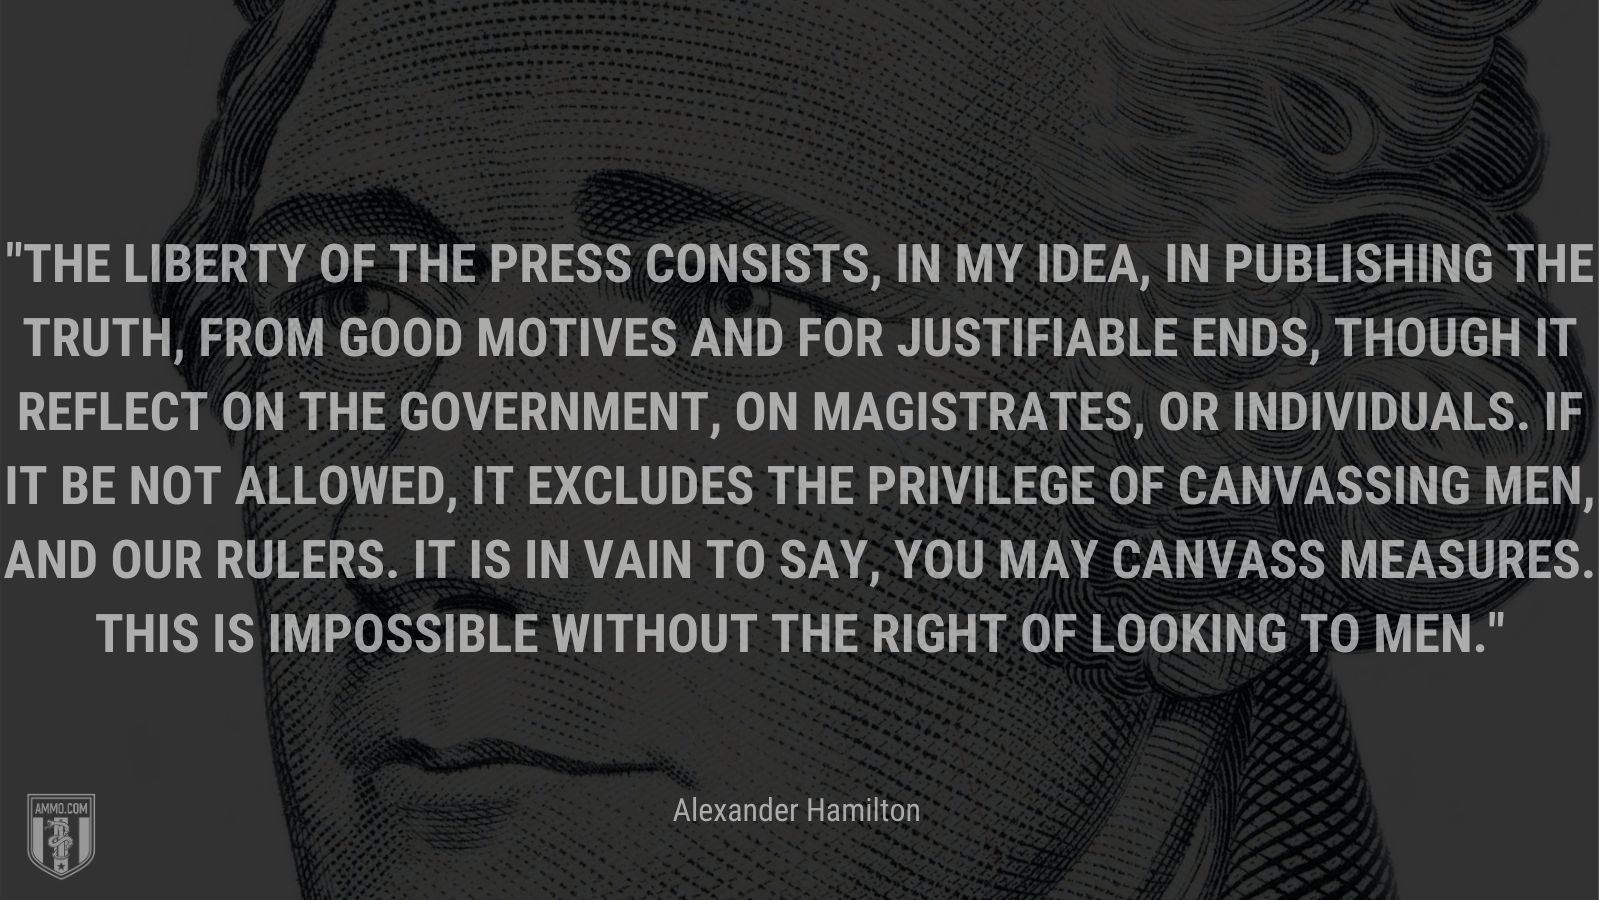 """""""The liberty of the press consists, in my idea, in publishing the truth, from good motives and for justifiable ends, though it reflect on the government, on magistrates, or individuals. If it be not allowed, it excludes the privilege of canvassing men, and our rulers. It is in vain to say, you may canvass measures. This is impossible without the right of looking to men."""" - Alexander Hamilton"""